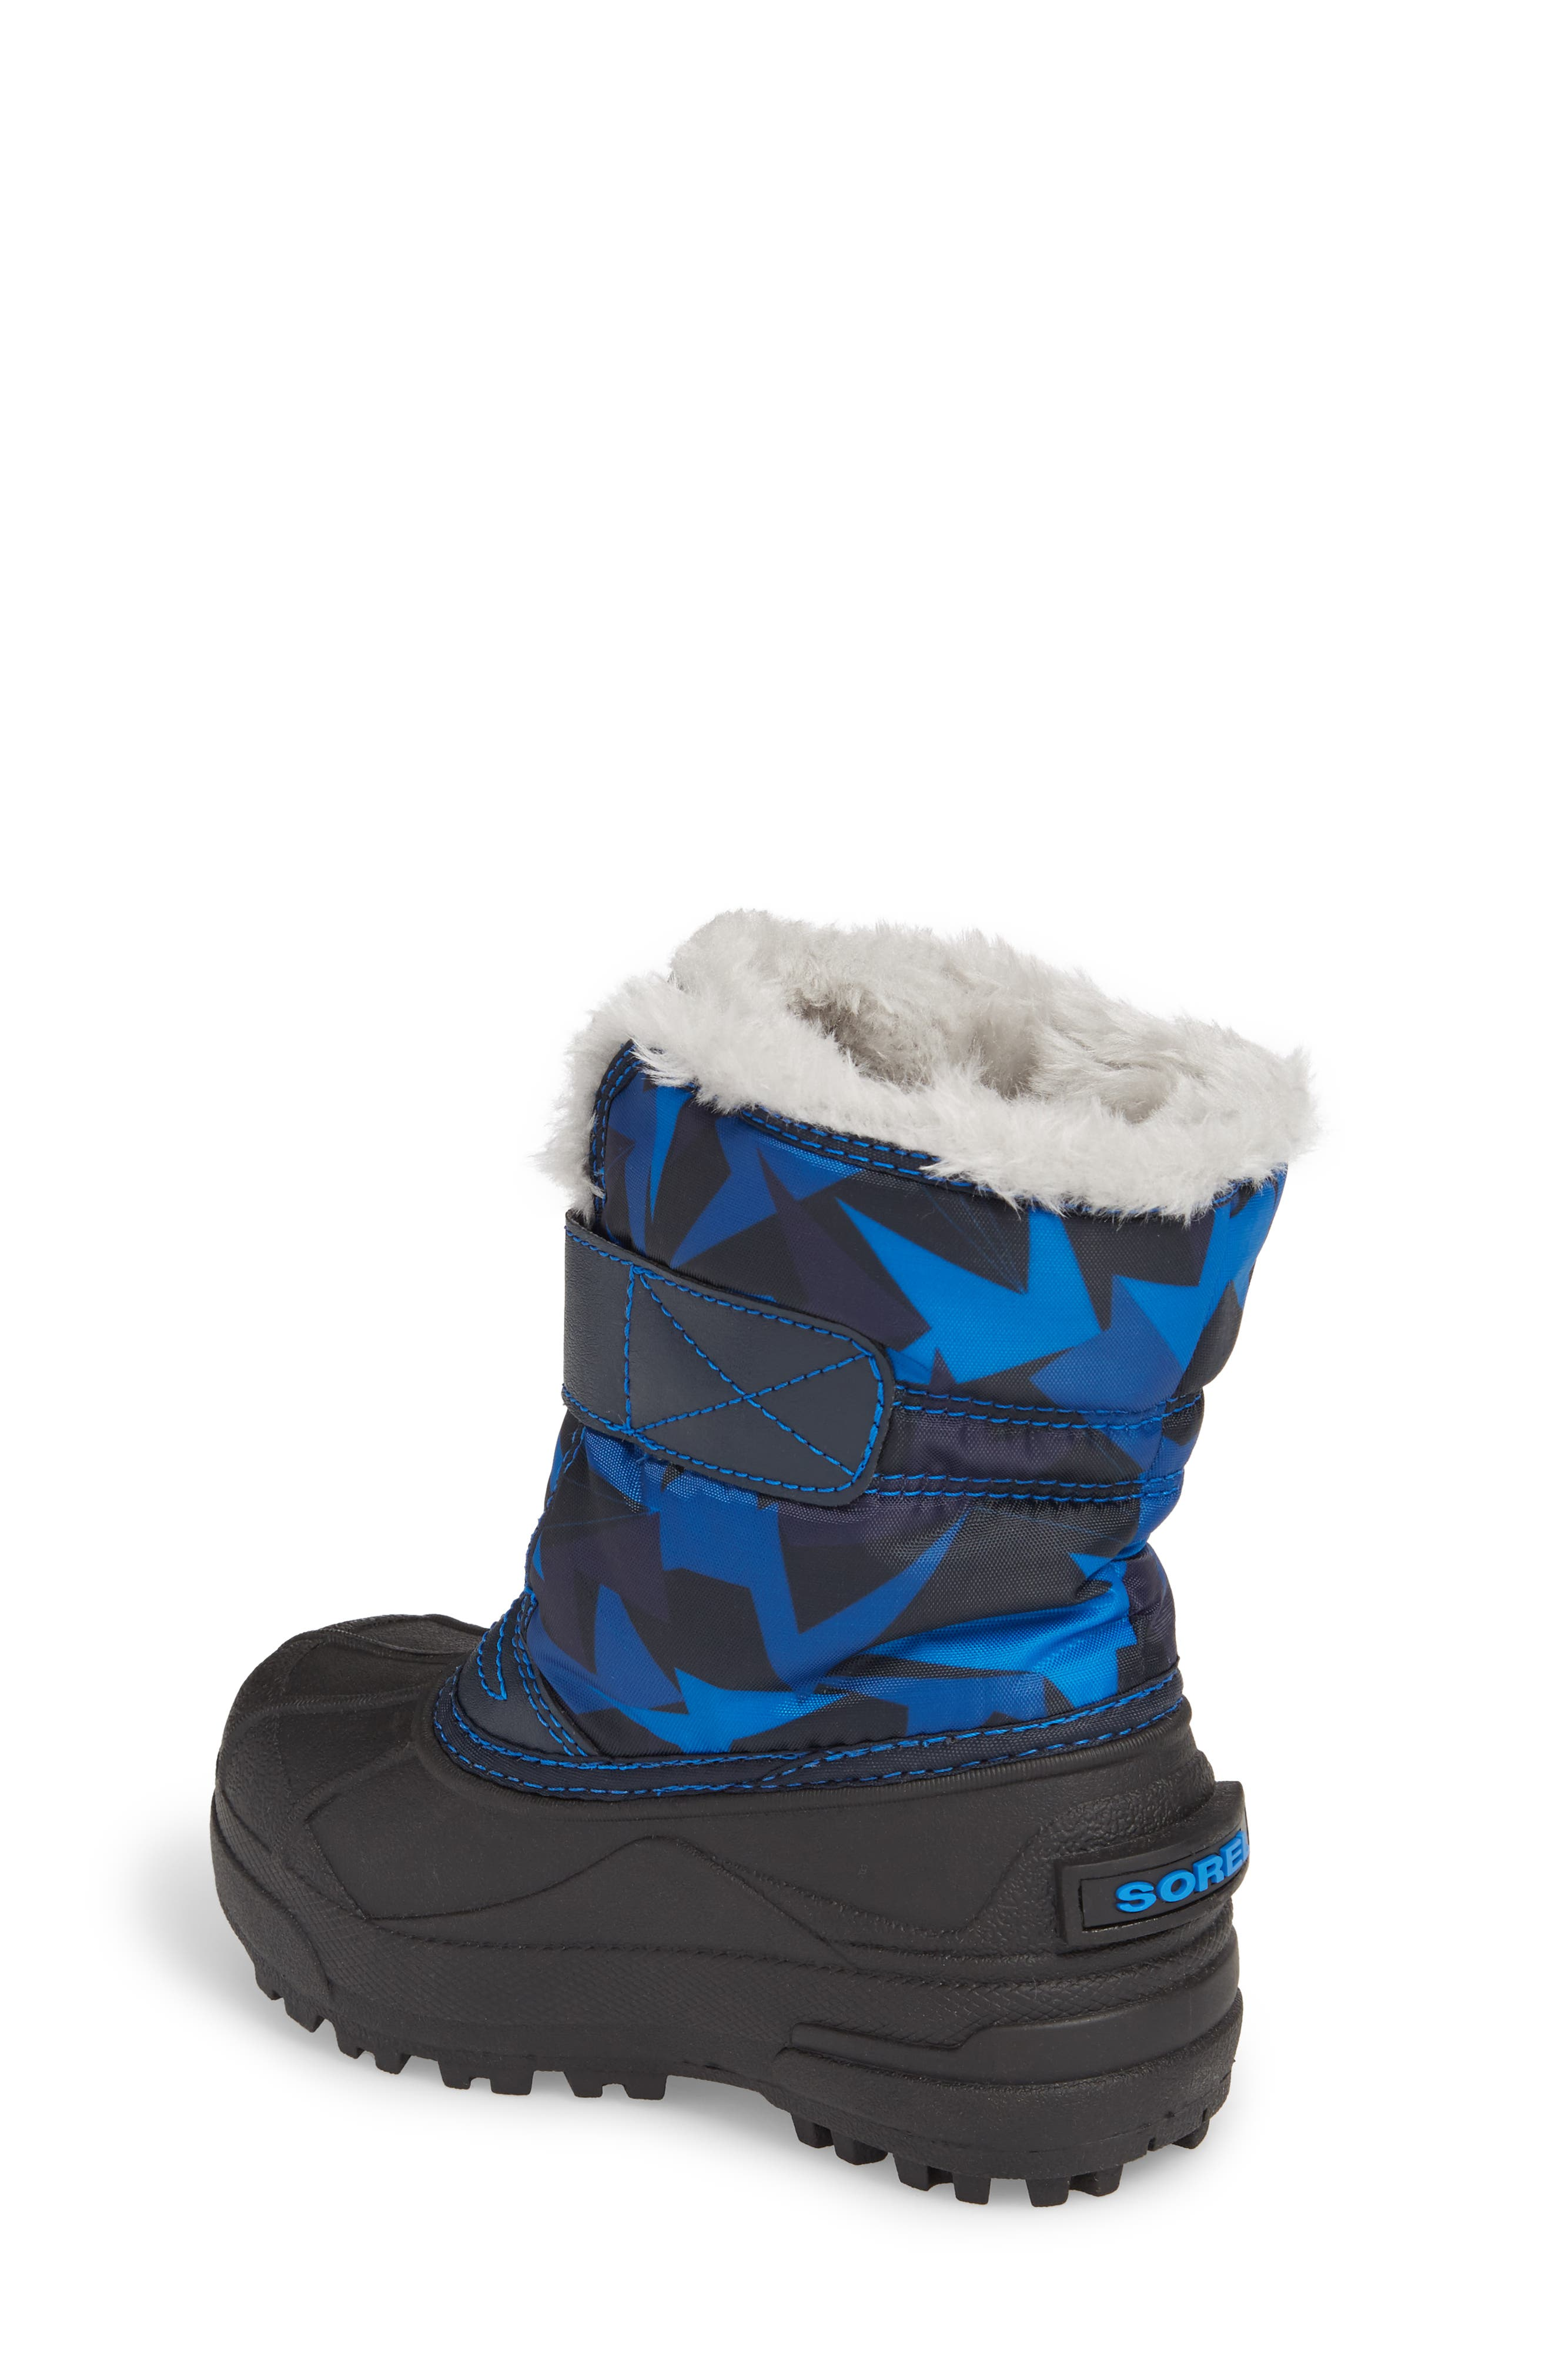 Children's Snow Commander Insulated Waterproof Boot,                             Alternate thumbnail 2, color,                             439